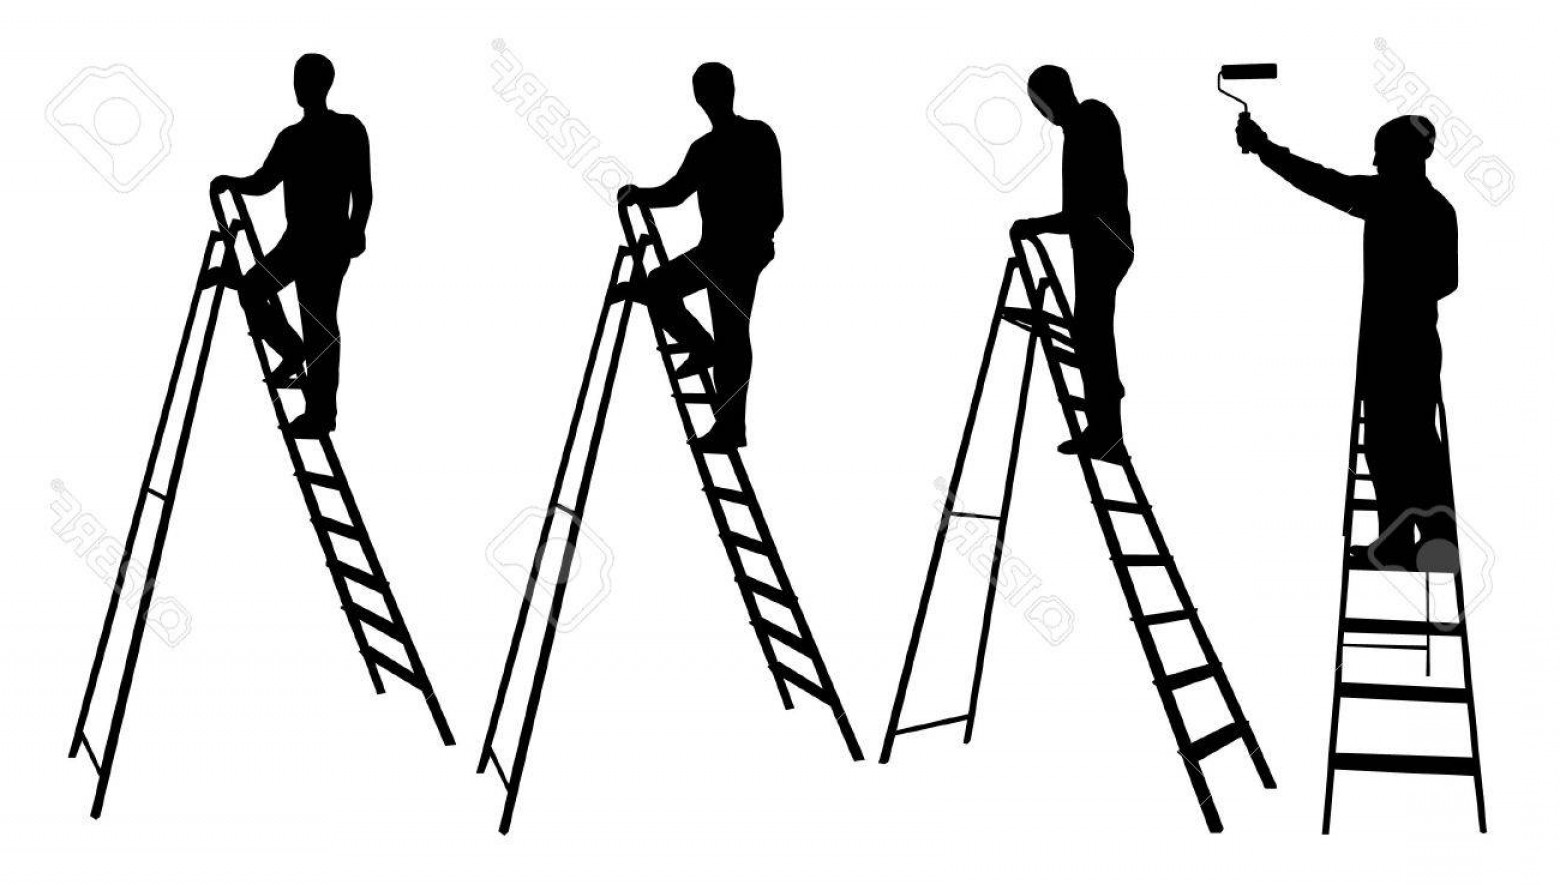 Ladder Silhouette Vector: Photostock Vector Man On Ladder Silhouettes